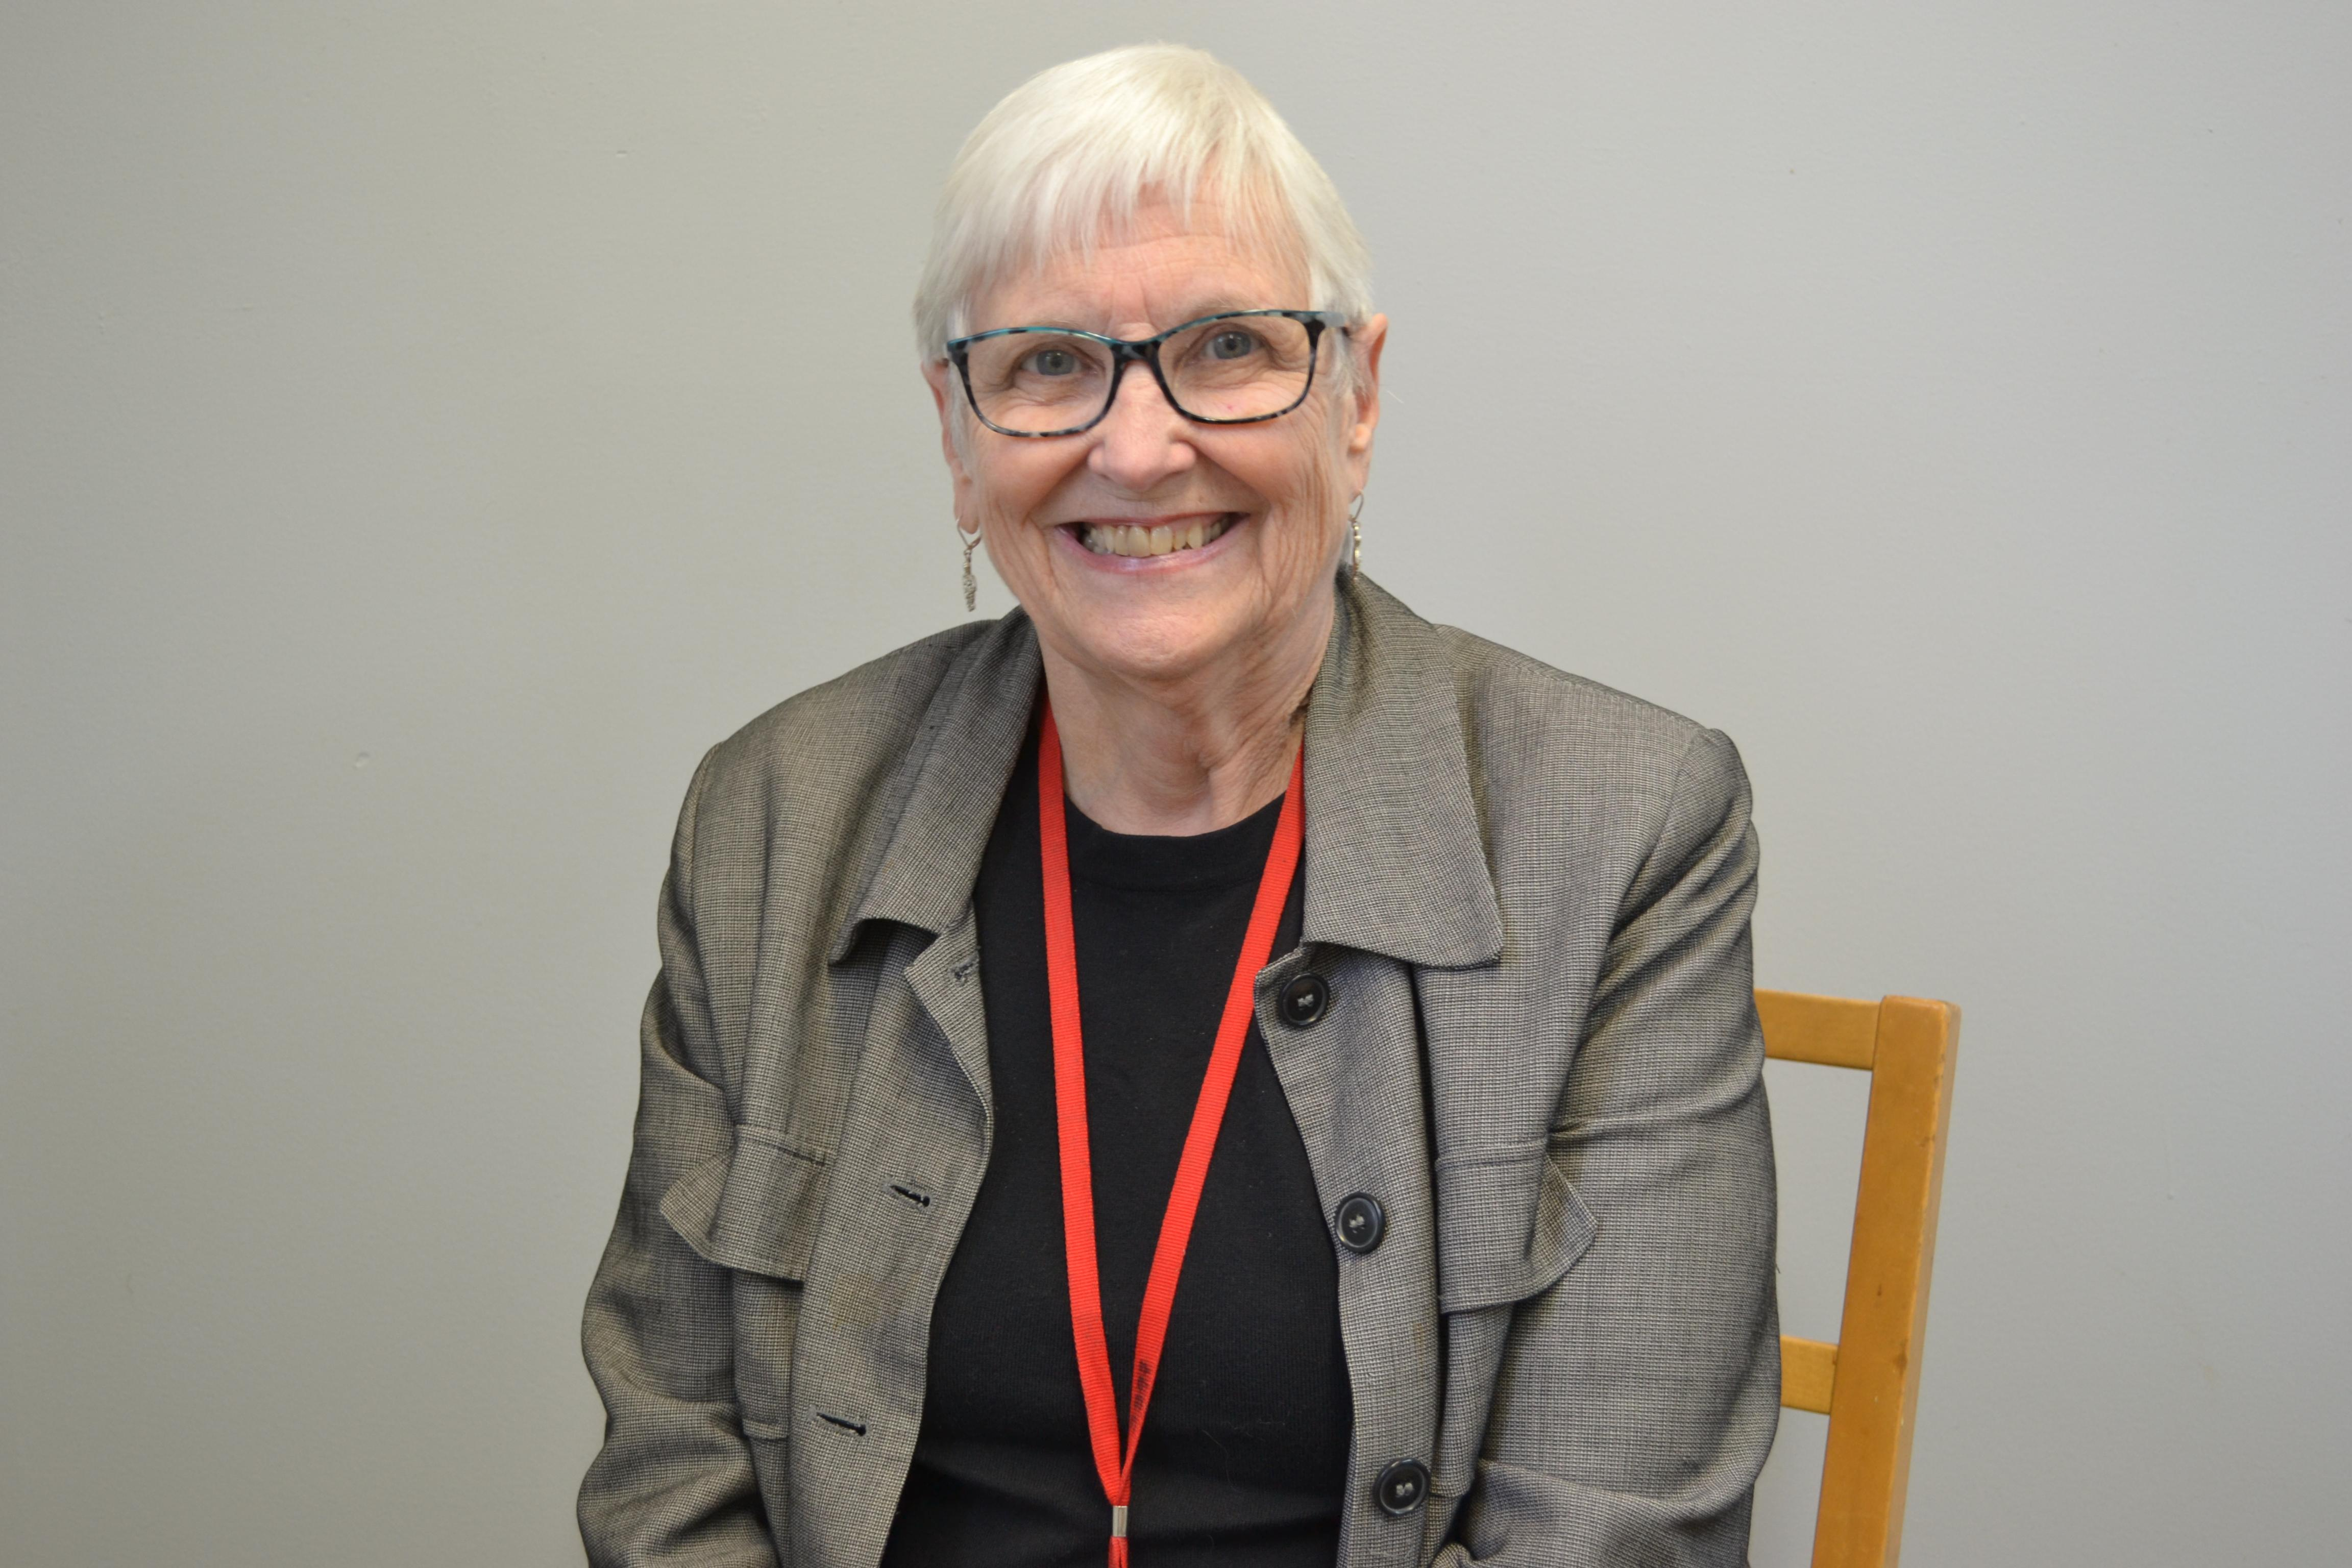 June Anderson, Spiritual Care Provider